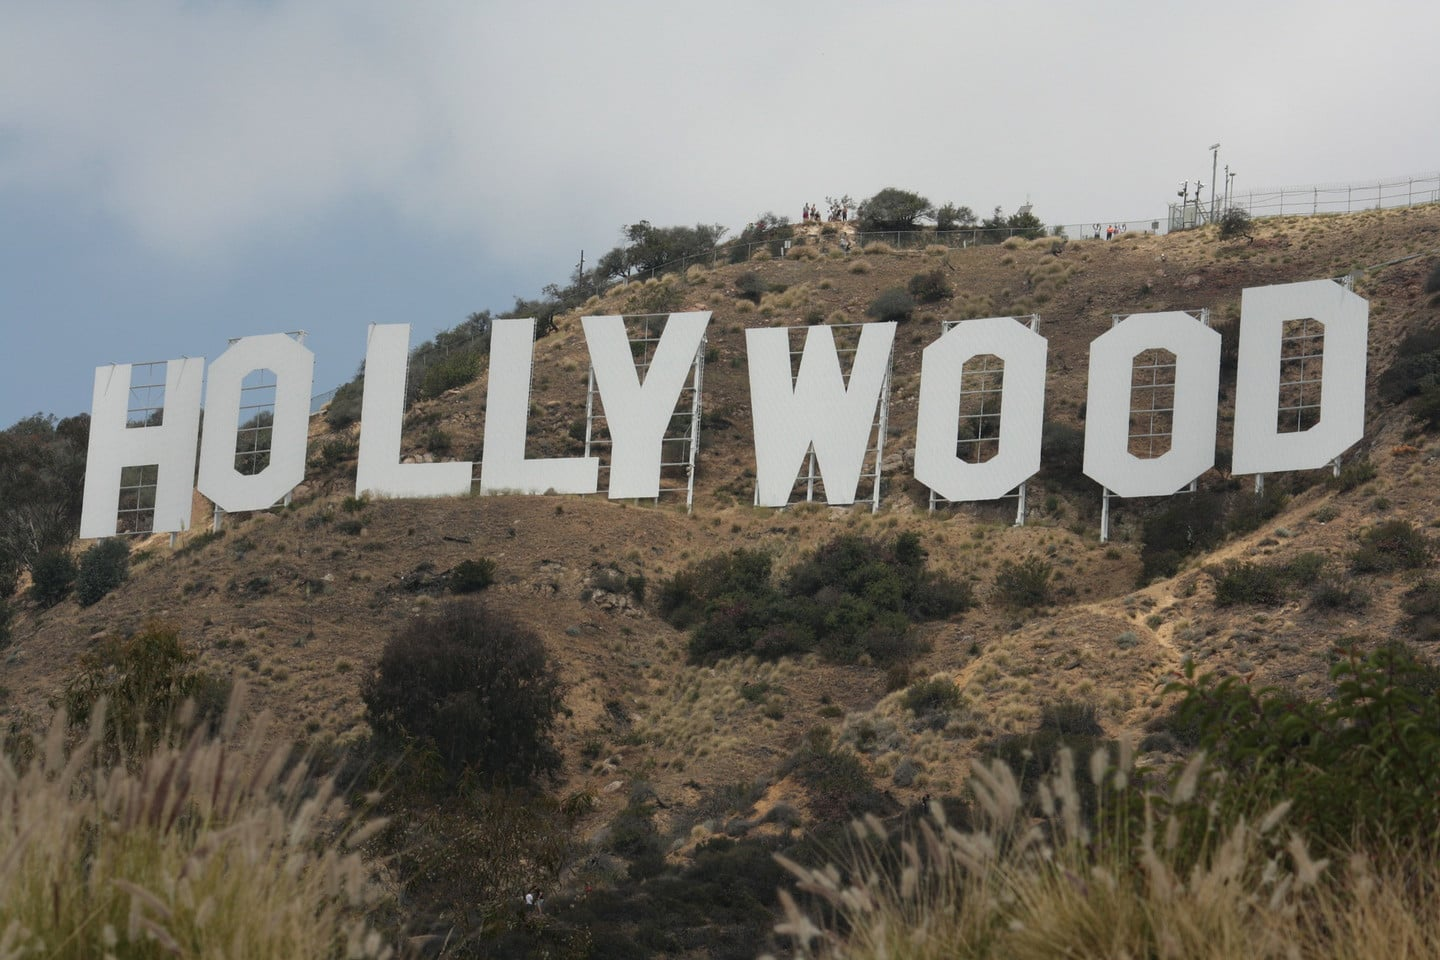 Television Hollywood